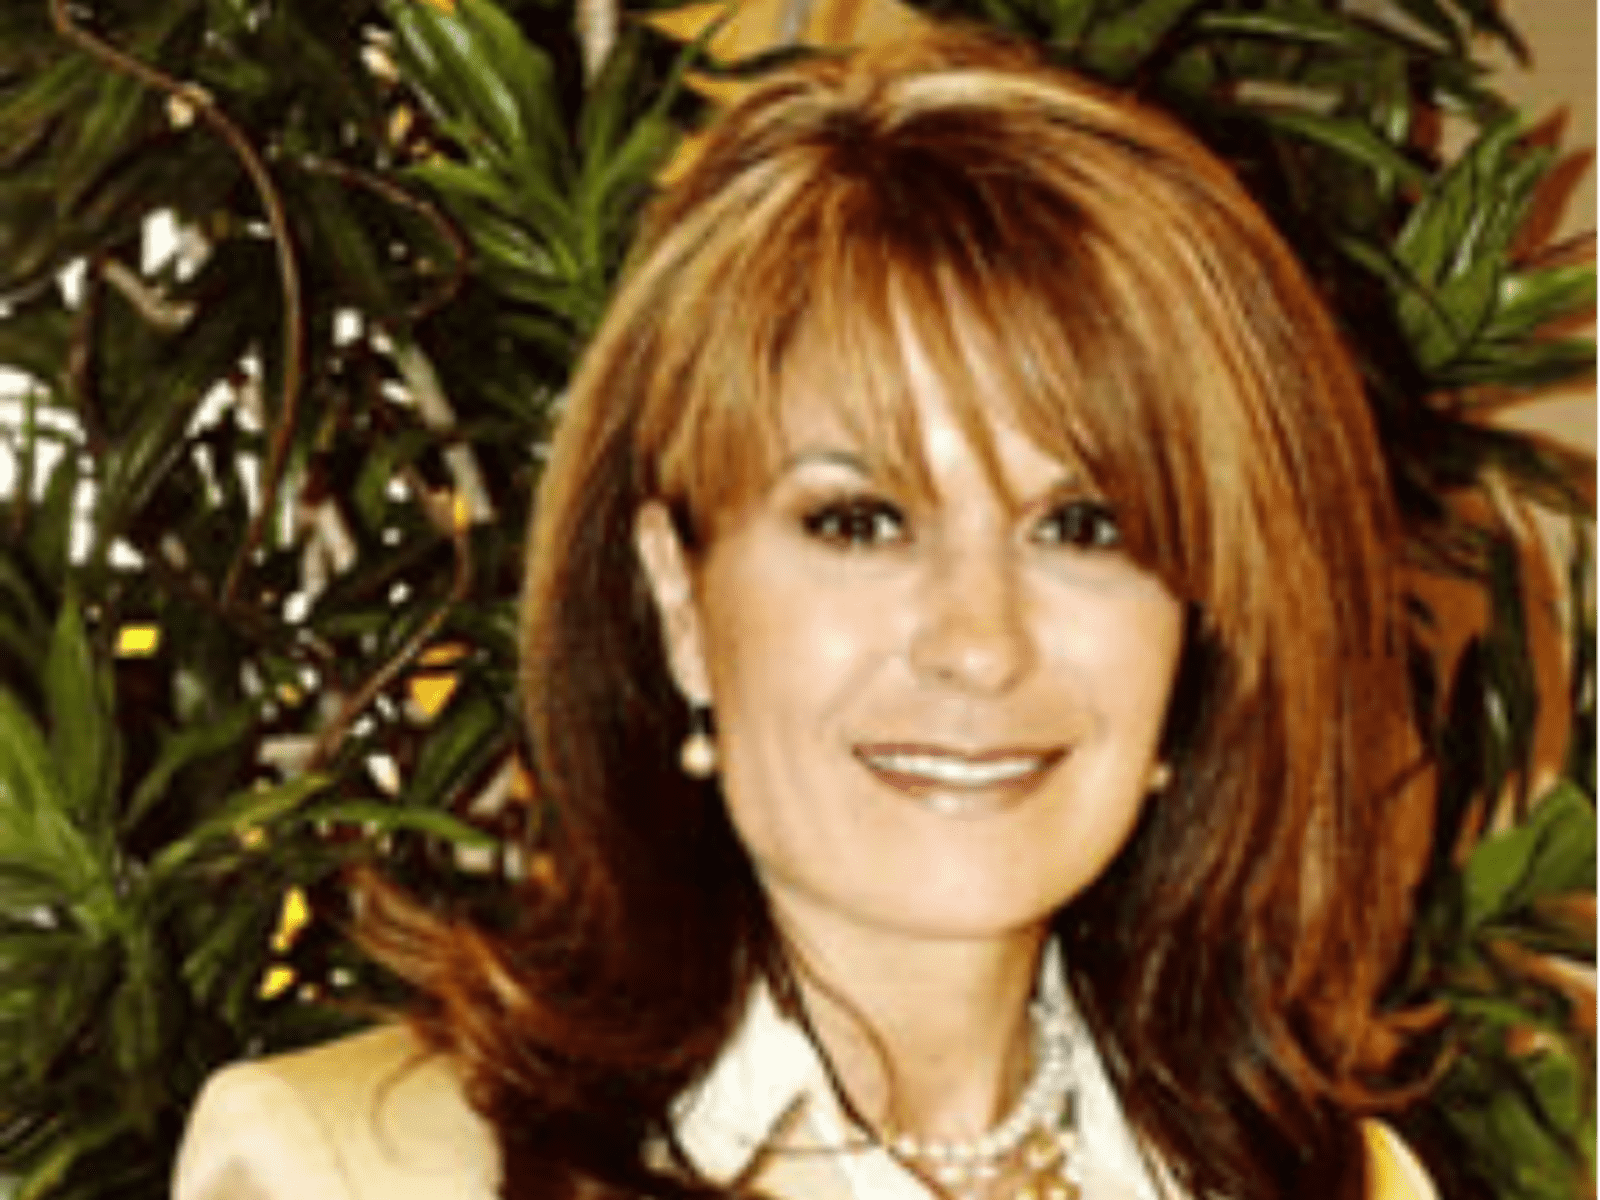 Barbara from Boca Raton, Florida, United States